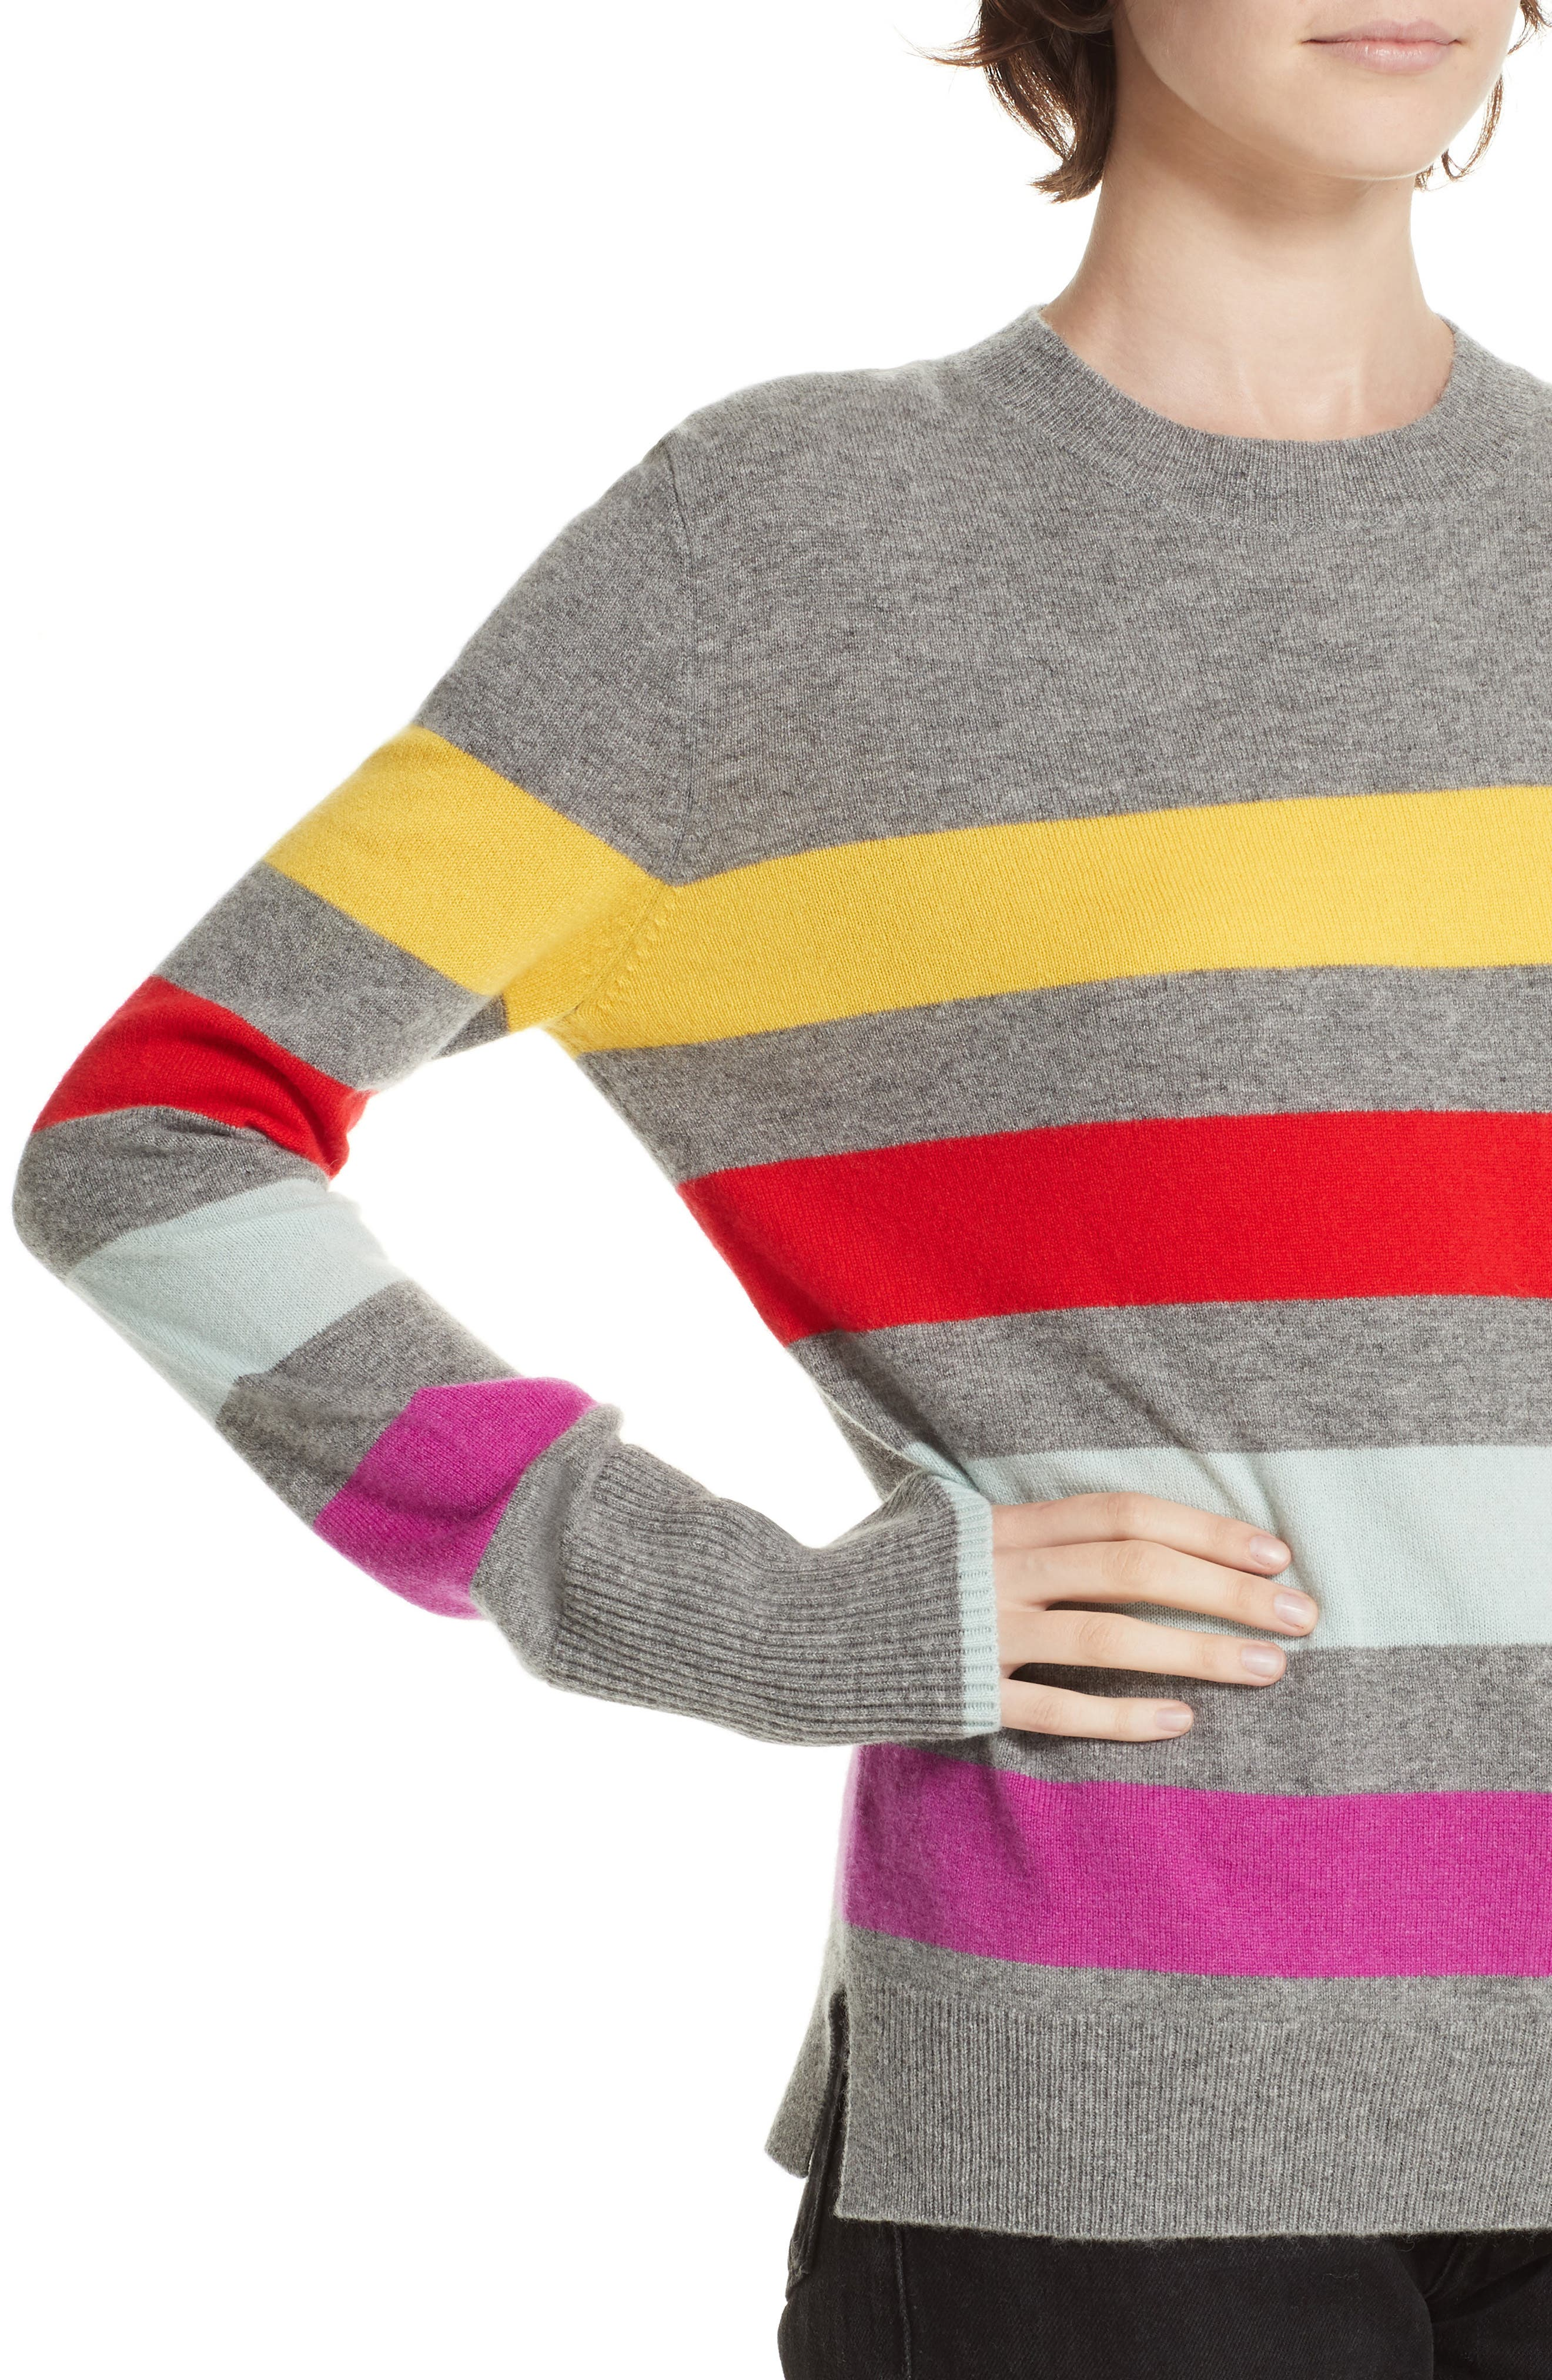 Candy Stripe Sweater,                             Alternate thumbnail 4, color,                             GREY MARLE/ RAINBOW